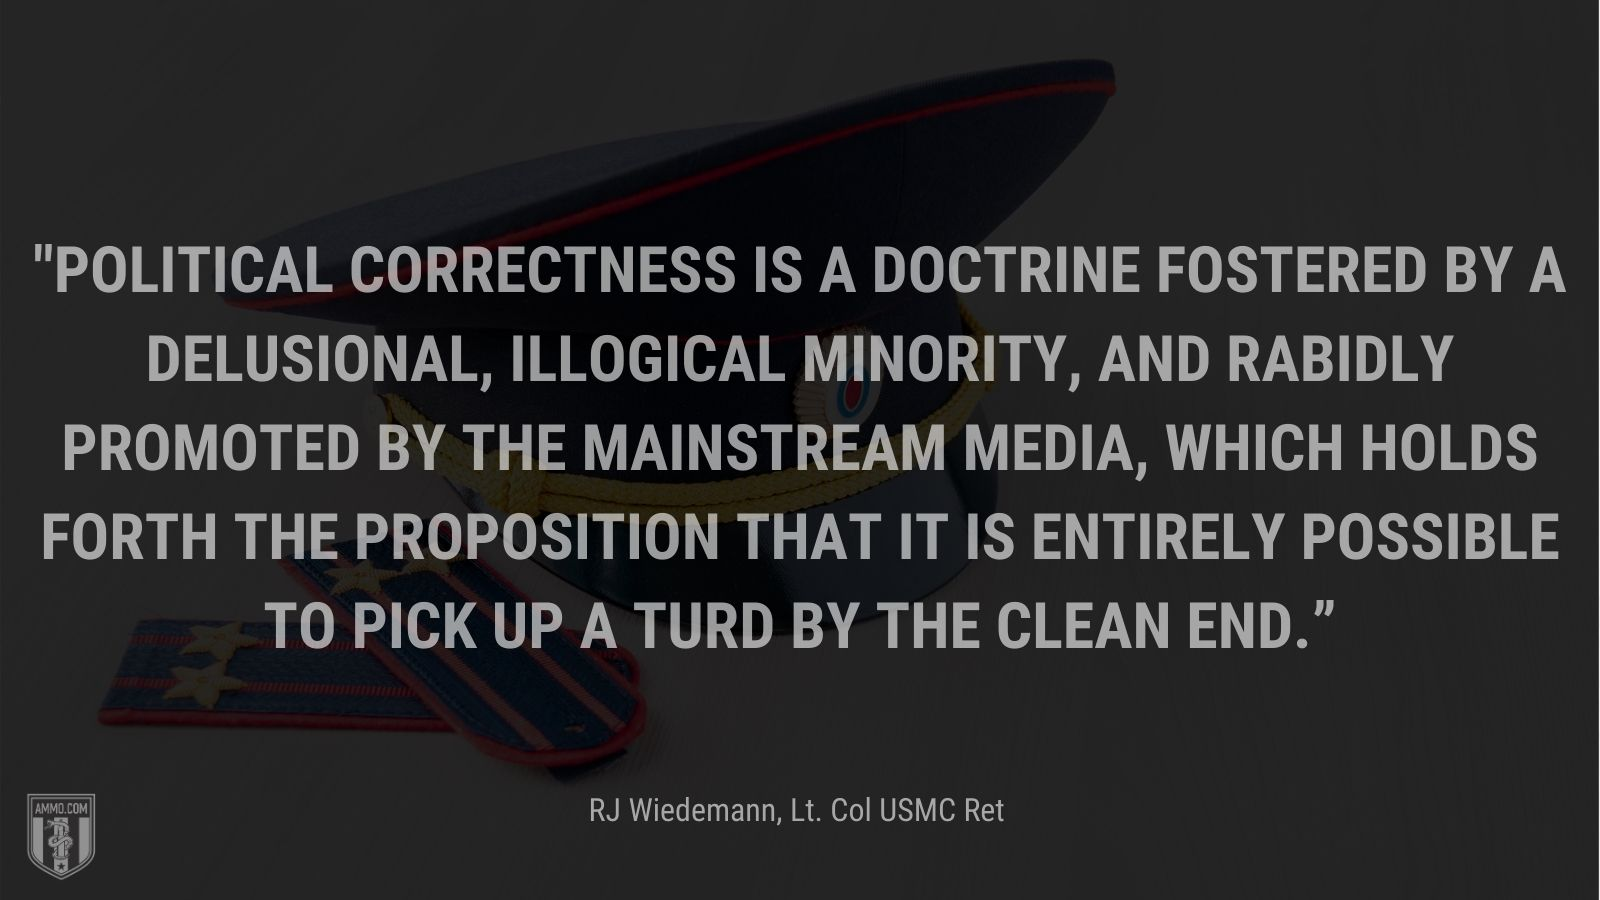 """""""Political correctness is a doctrine fostered by a delusional, illogical minority, and rabidly promoted by the mainstream media, which holds forth the proposition that it is entirely possible to pick up a turd by the clean end."""" - RJ Wiedemann, Lt. Col USMC Ret"""